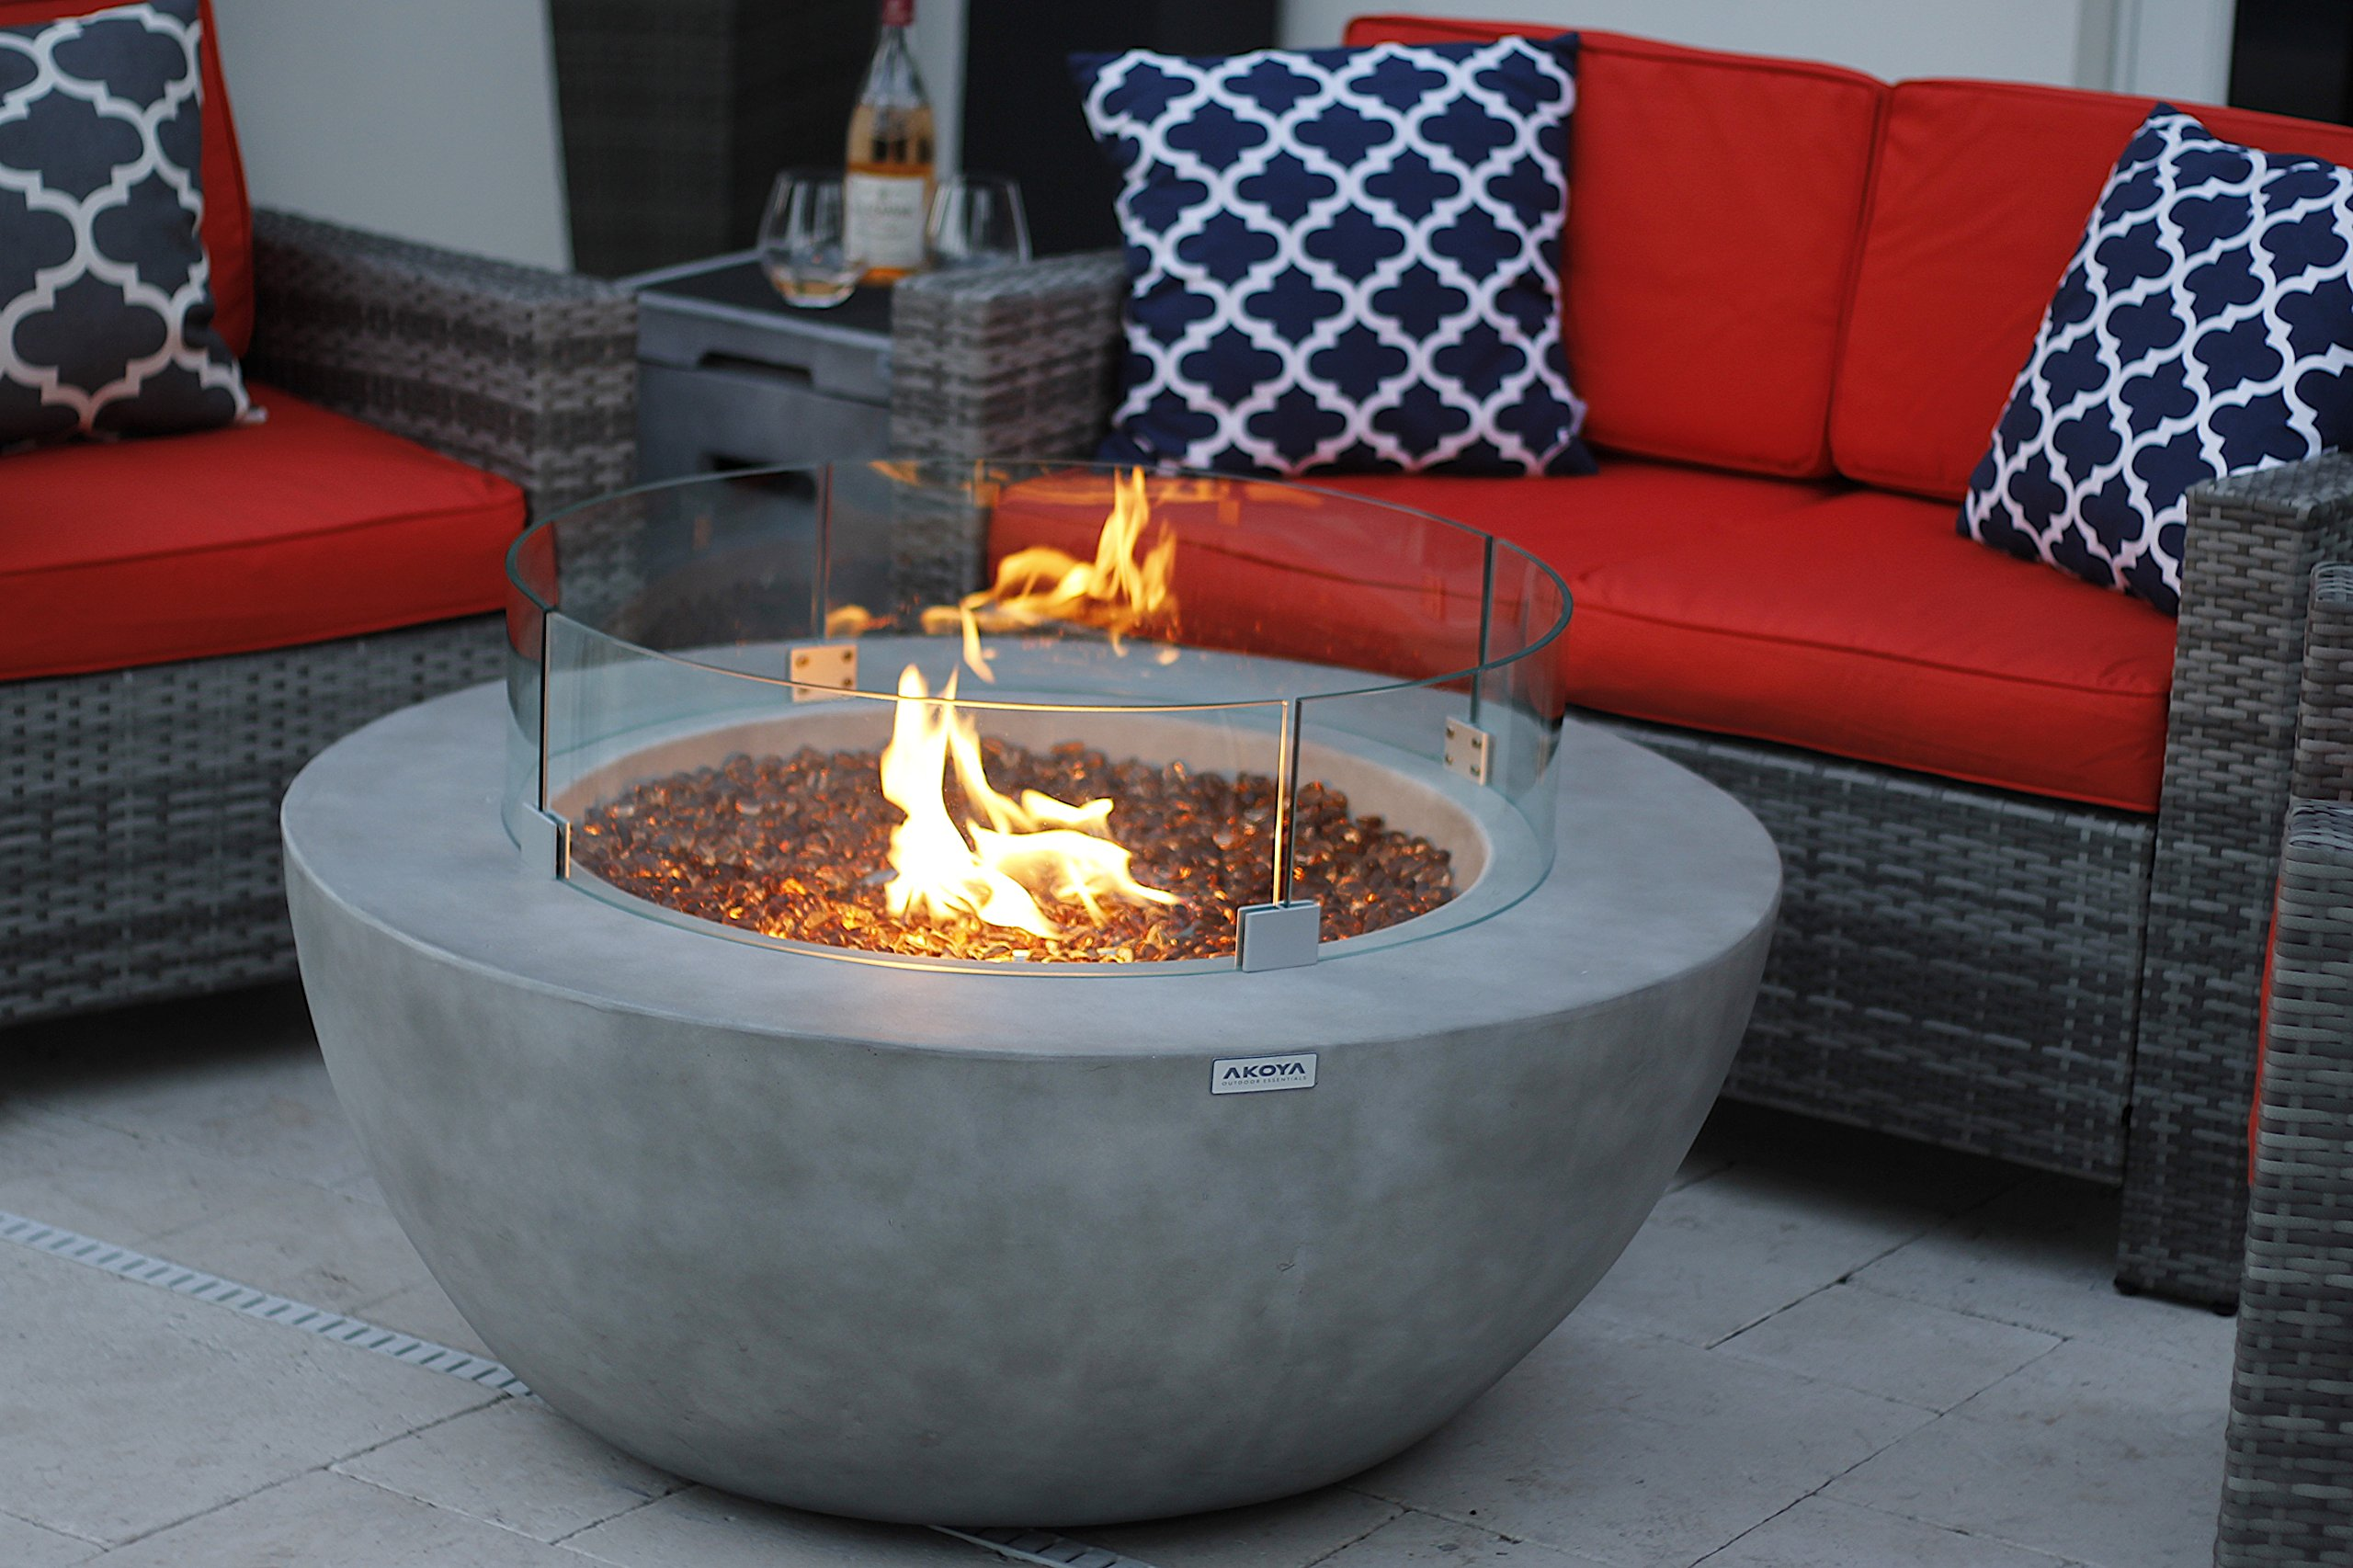 AKOYA Outdoor Essentials 42'' Modern Concrete Fire Pit Table Bowl w/Glass Guard and Crystals in Gray (High Desert) by AKOYA Outdoor Essentials